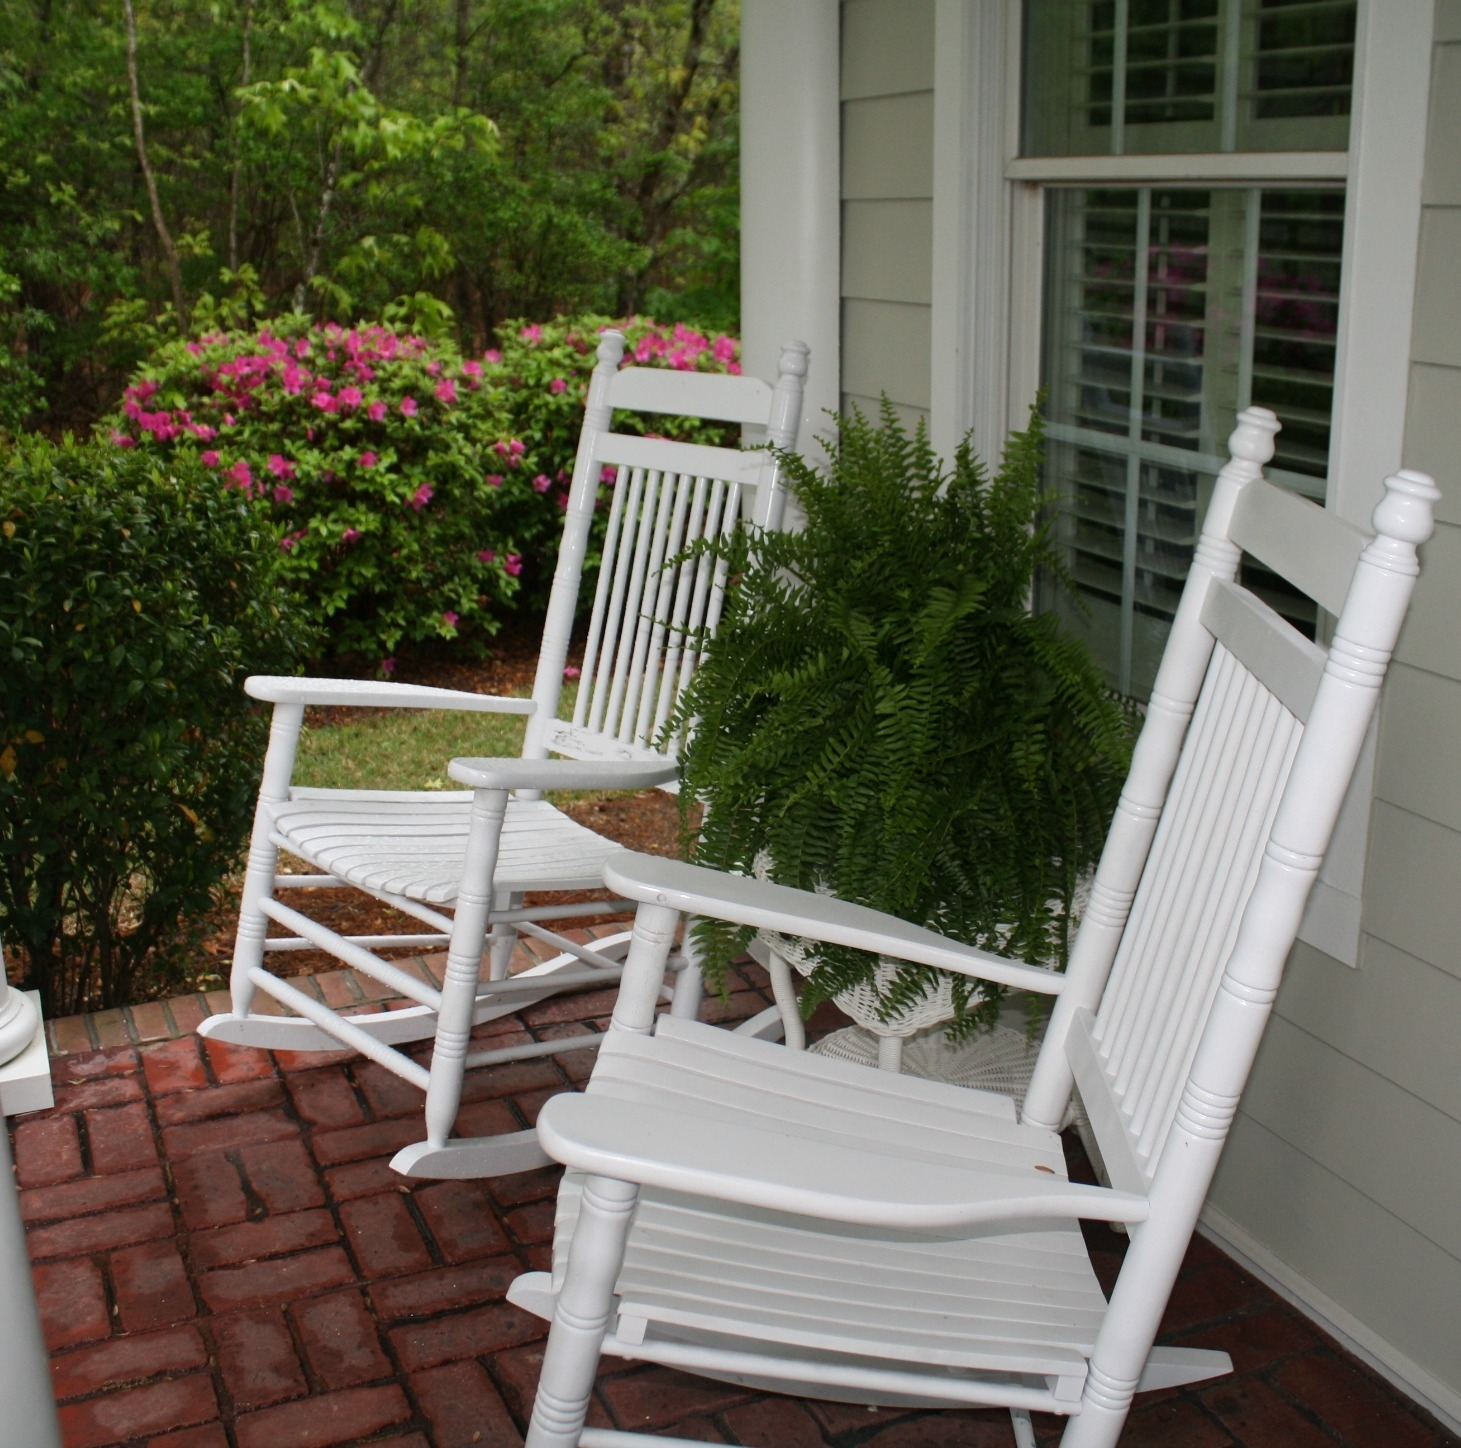 Outdoor Front Porch Rocking Chairs Patio Furniture Lighting Shades Inside Rocking Chairs For Porch (View 8 of 15)